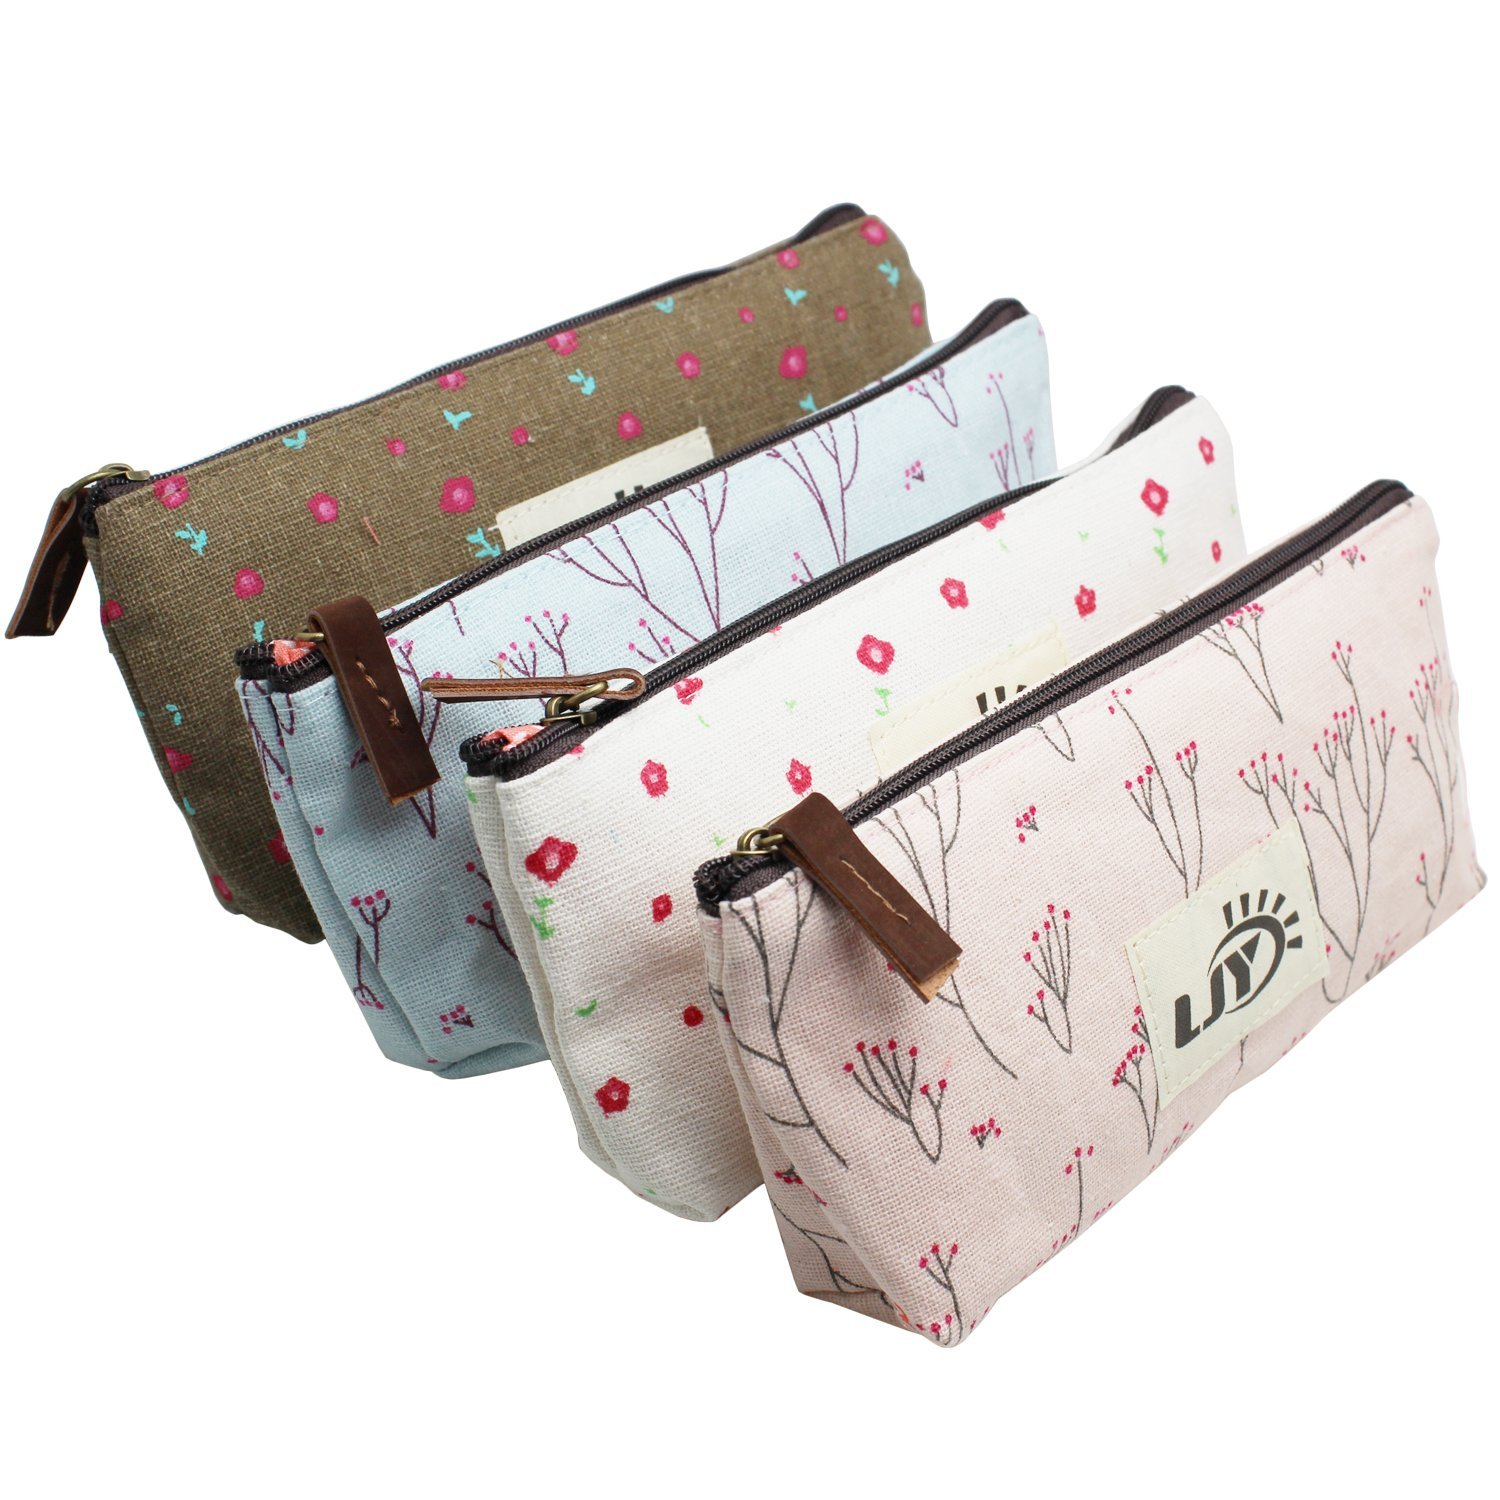 LJY Assorted Flower Floral Canvas Pen Holder Stationery Pencil Pouch Cosmetic Bags, 4 Piece